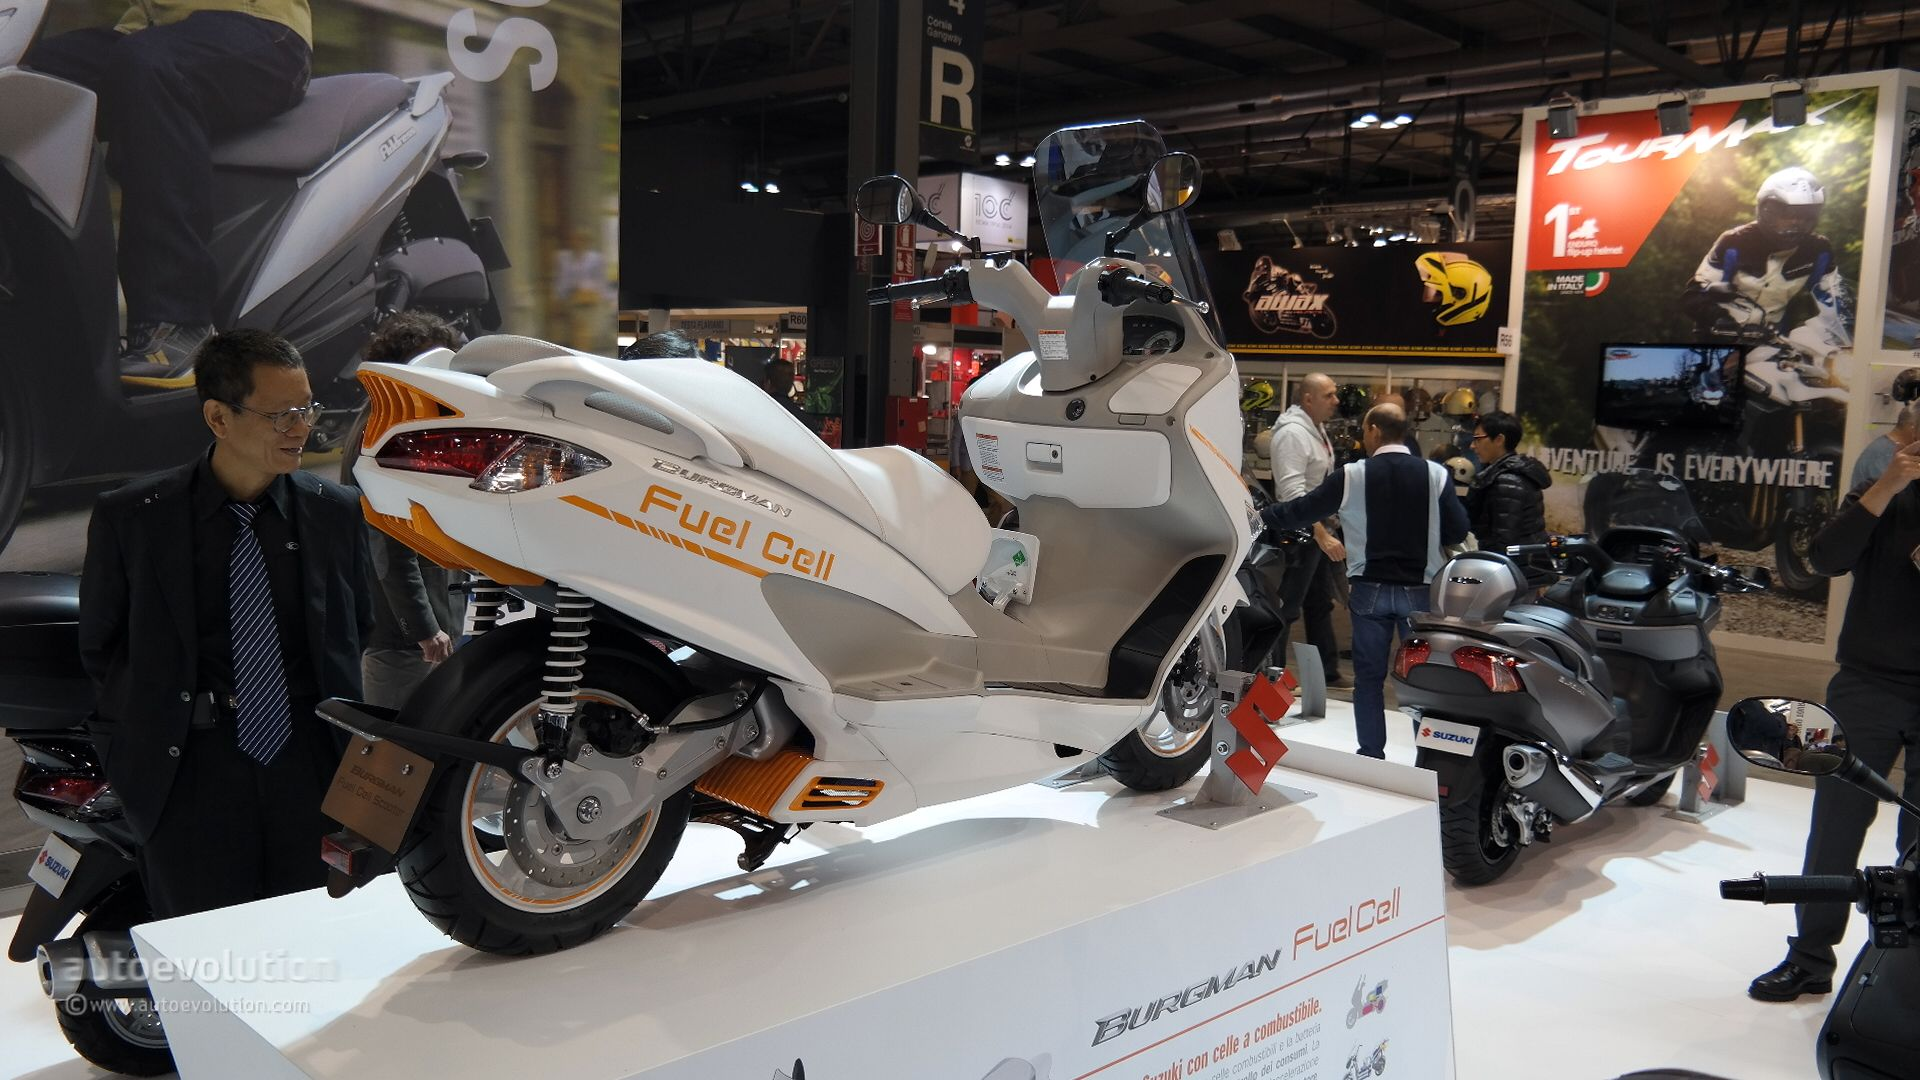 Suzuki Burgman Fuel Cell #11